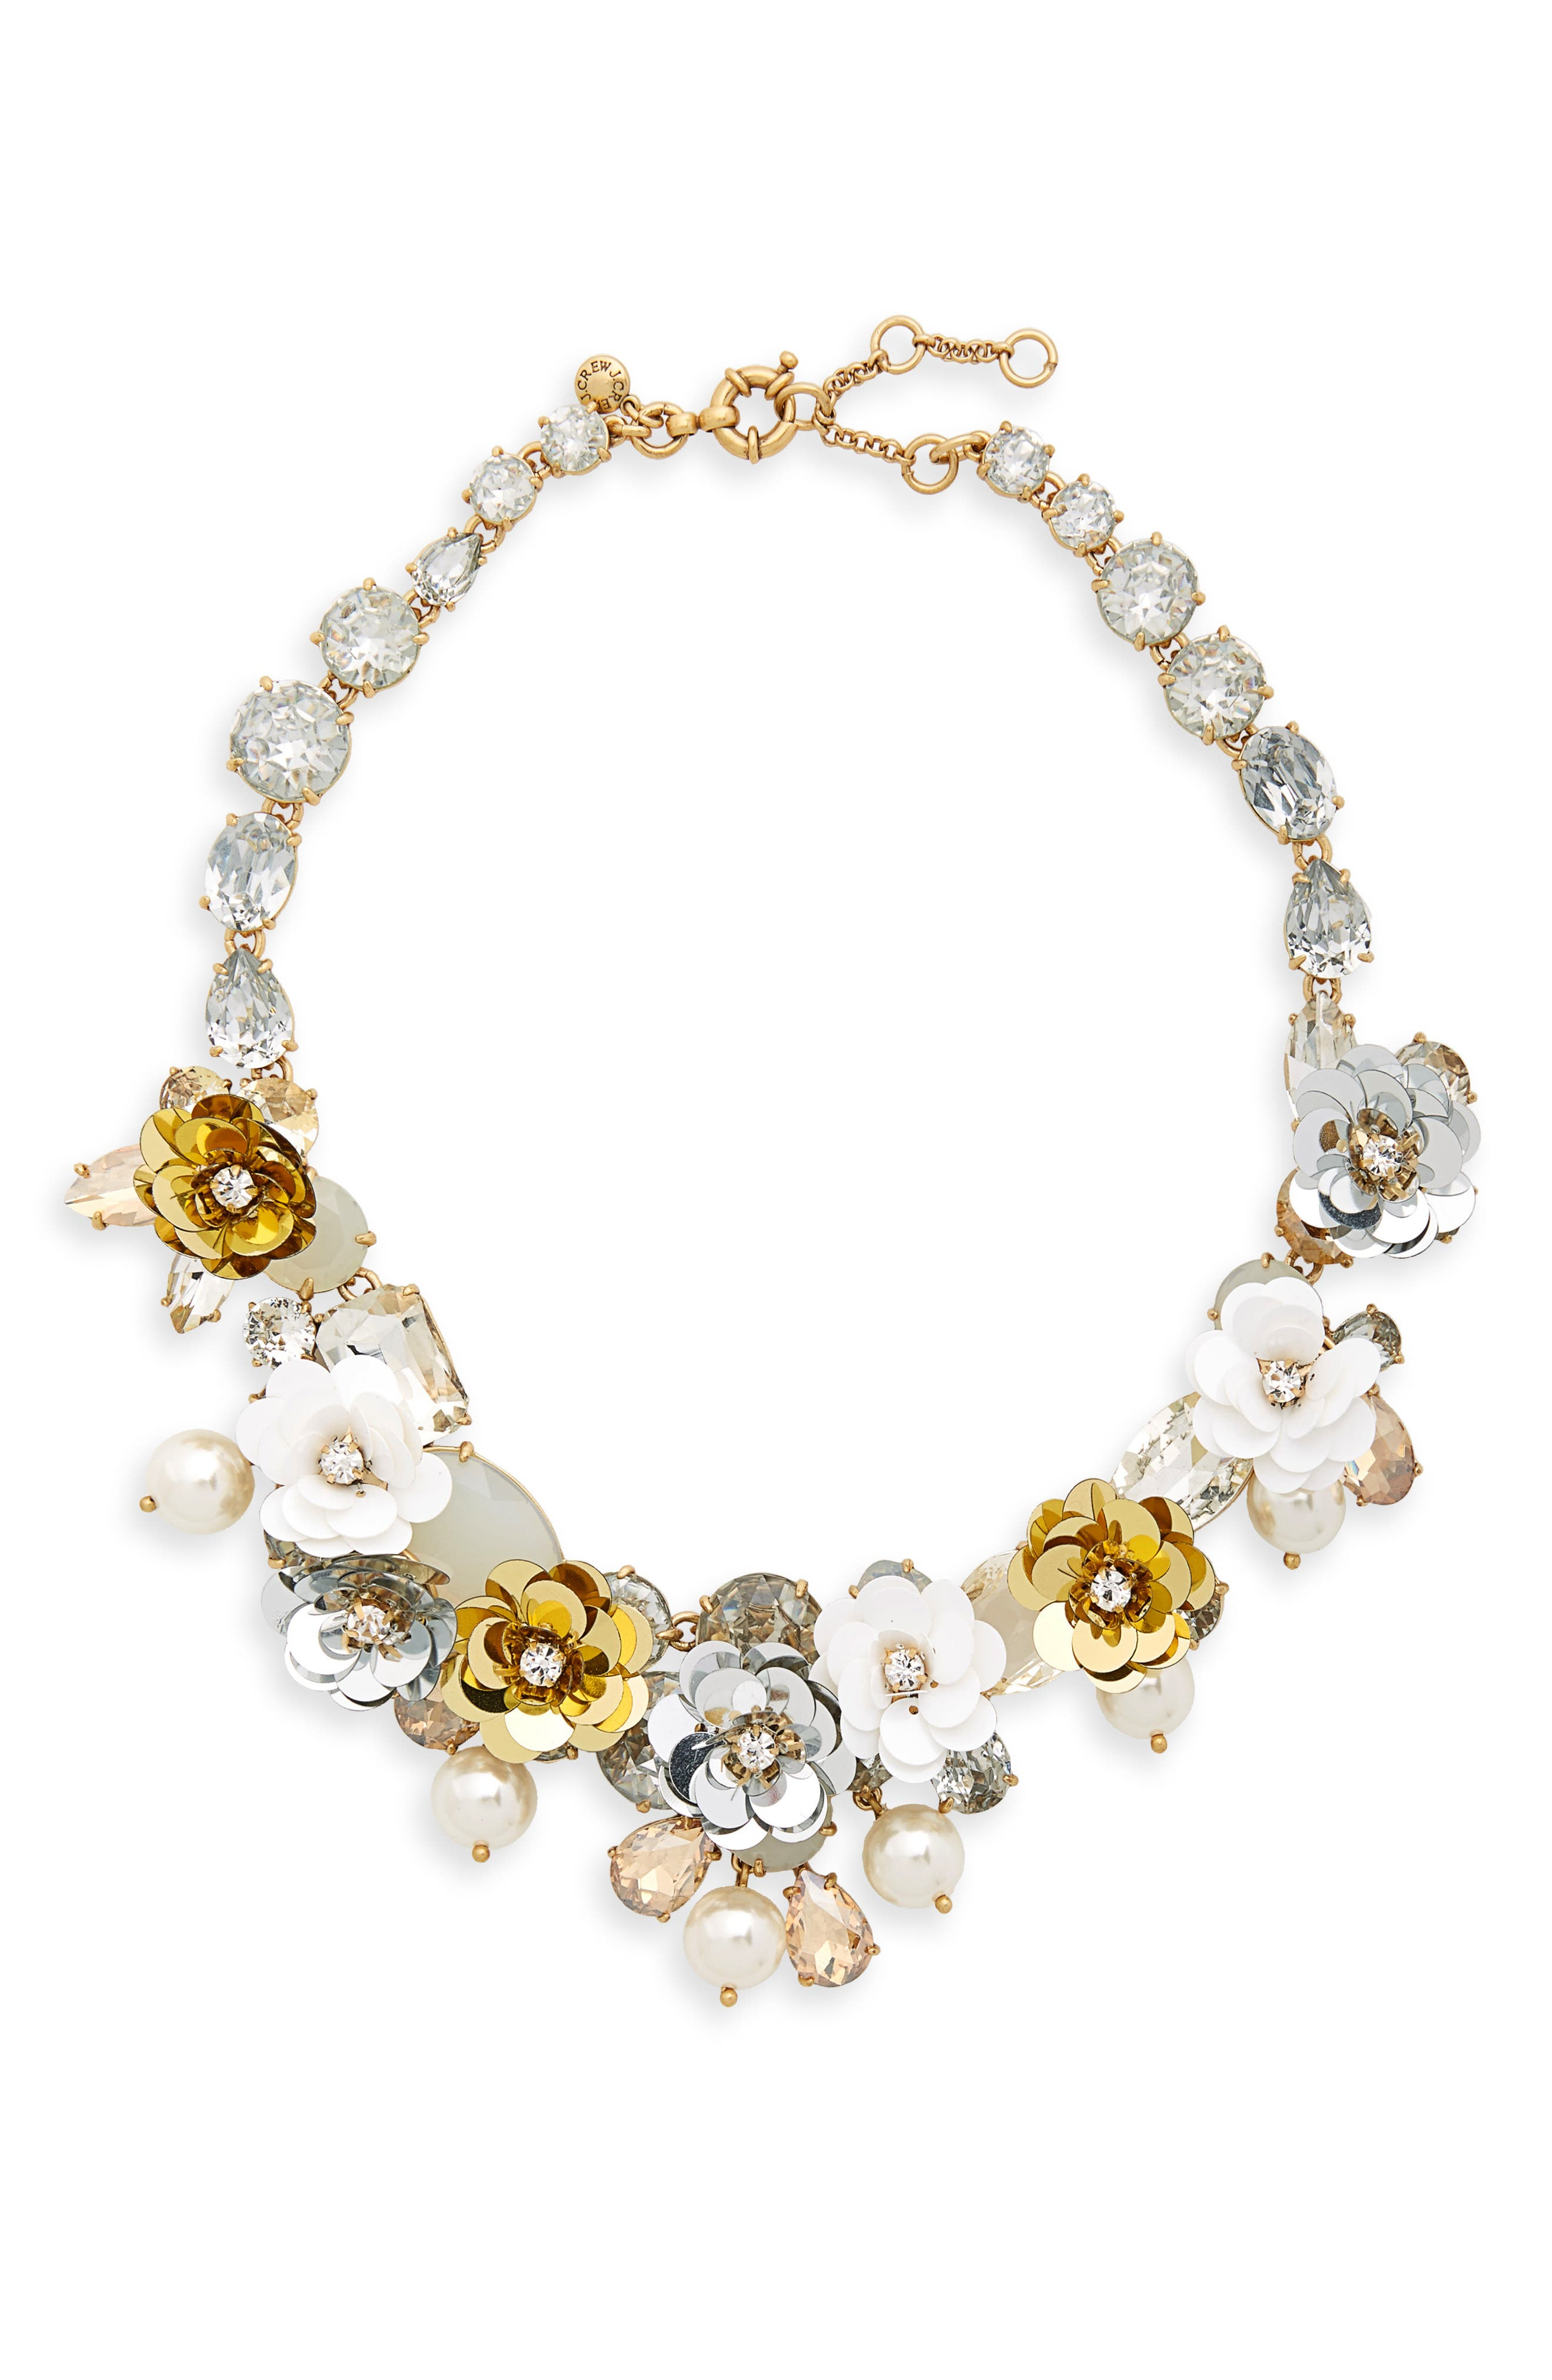 Crystal & Sequin Wreath Necklace,                             Main thumbnail 1, color,                             CRYSTAL